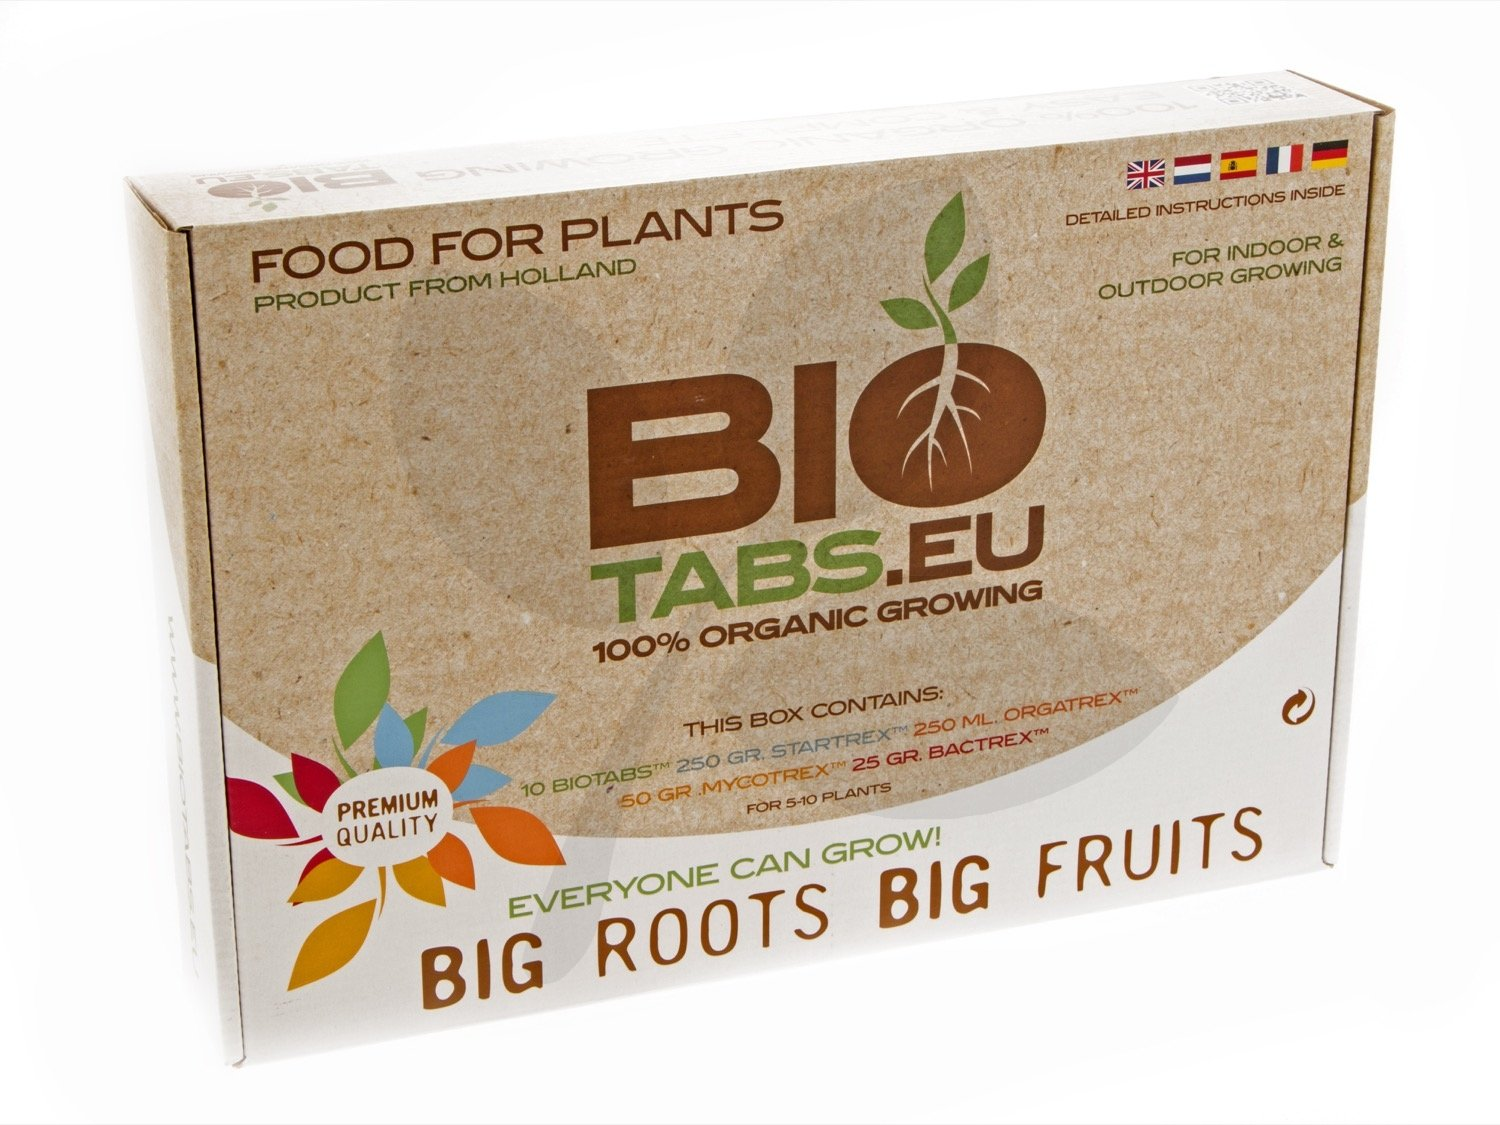 BioTabs Starter Kit, 100% Organic 5-10 Plant Kit - Perfect For Autopots Etc.